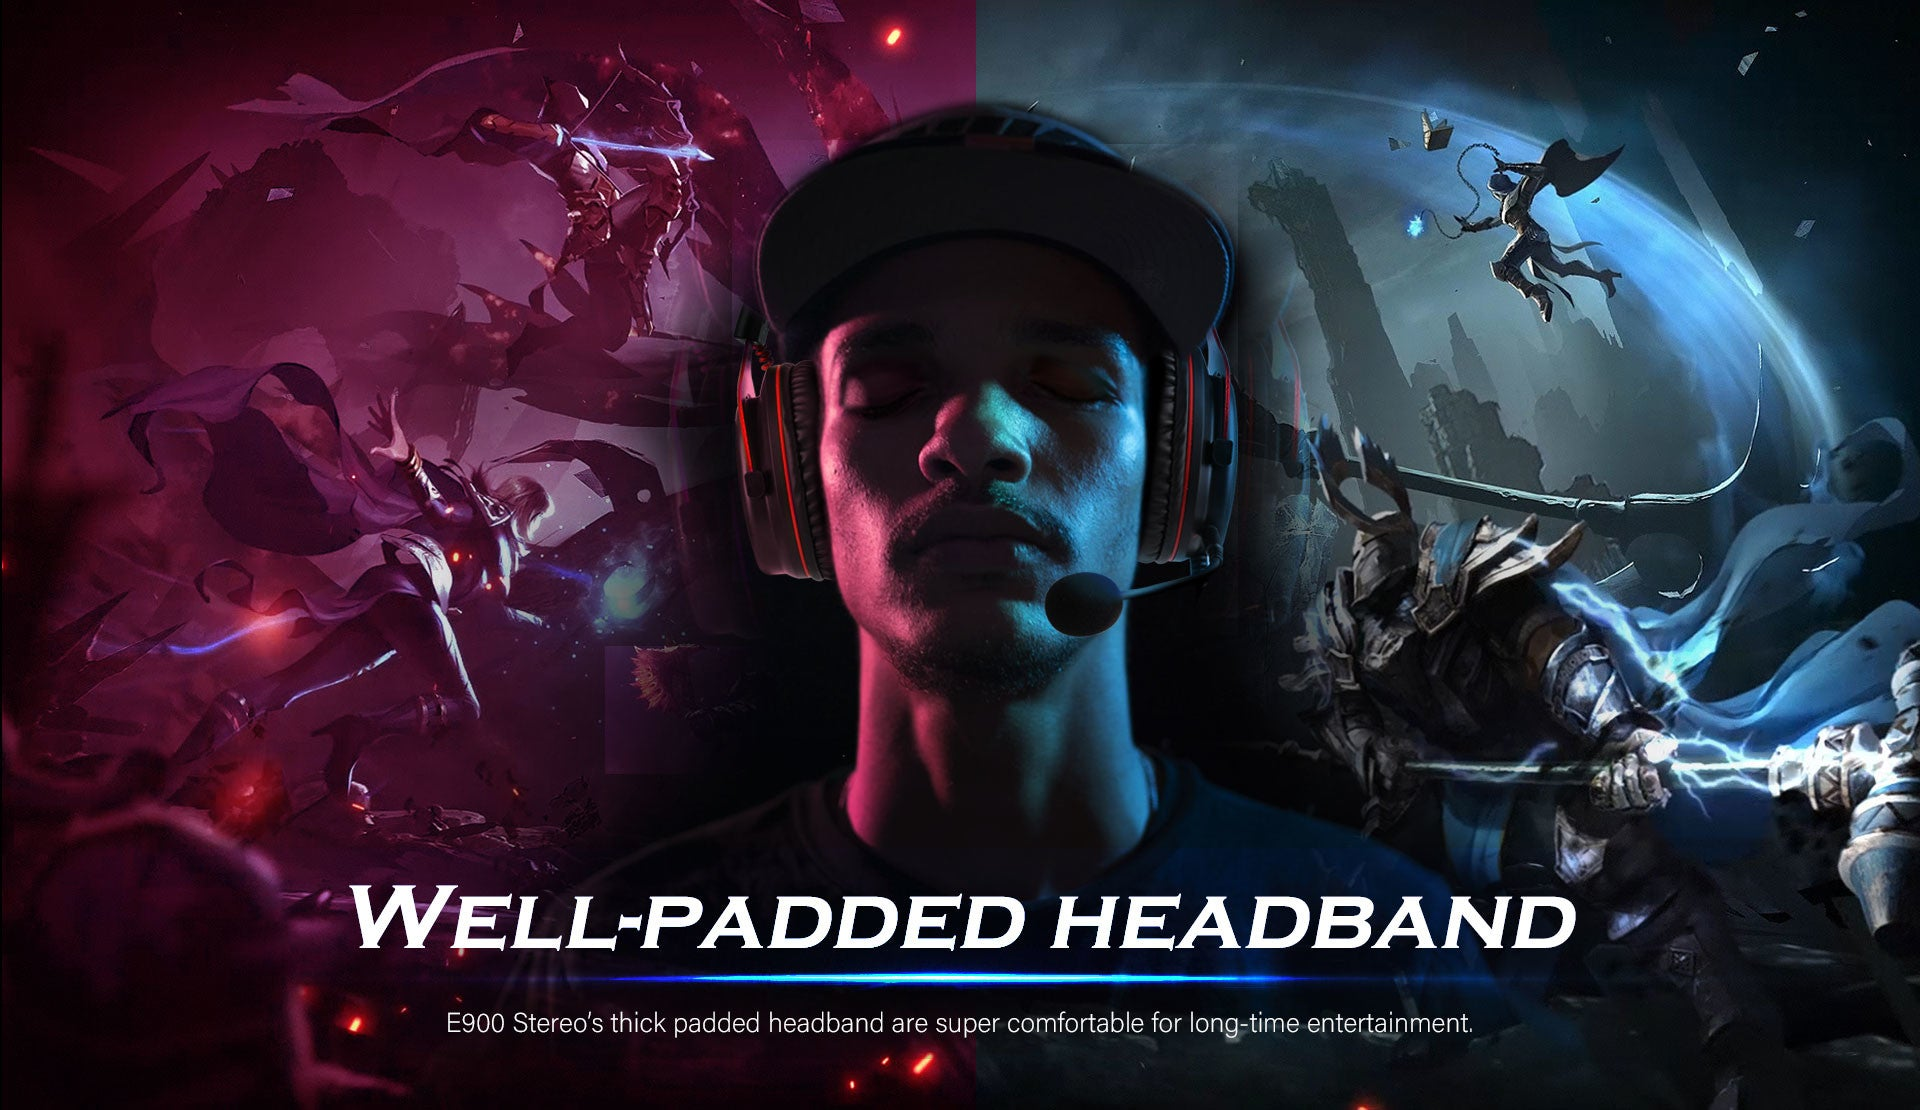 E900 Stereo's thick padded headband are super comfortable for long-time entertainment.